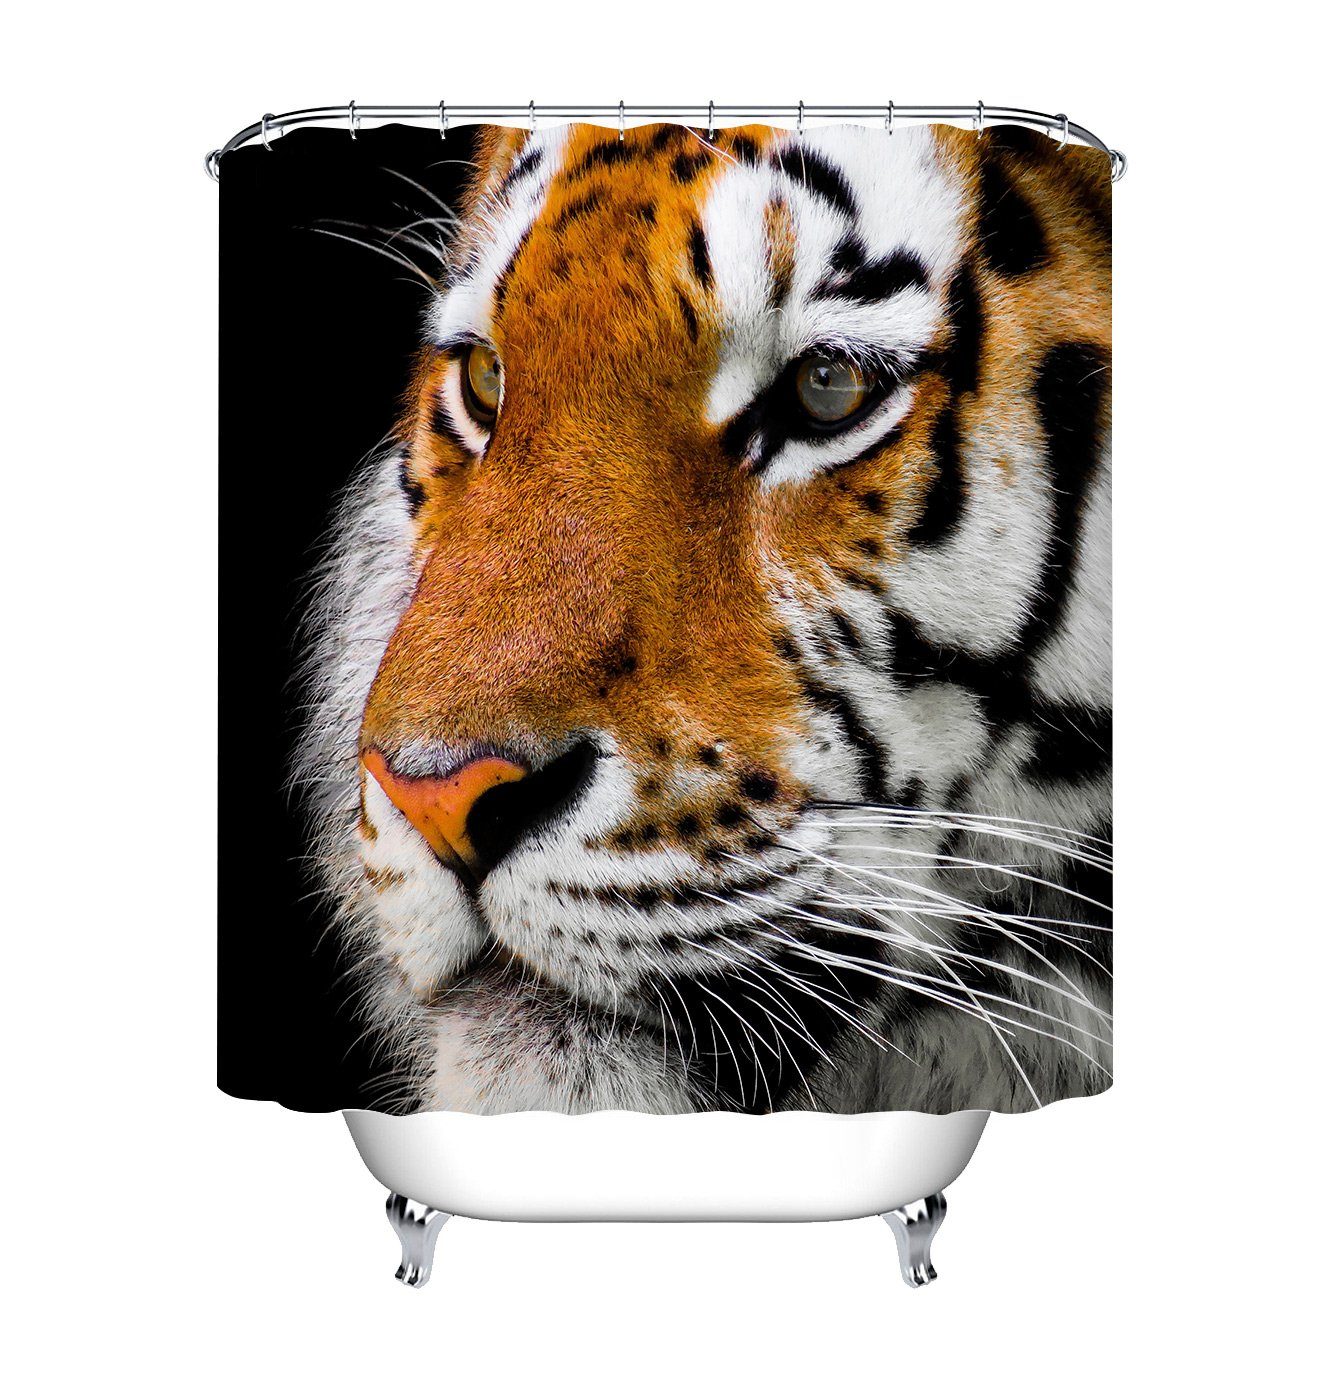 LB Asian Tiger Print Shower Curtains Set For Bathroom Forest Jungle Wild Animal Decor Curtain 70x70 Inch Fabric Waterproof Mildew Free